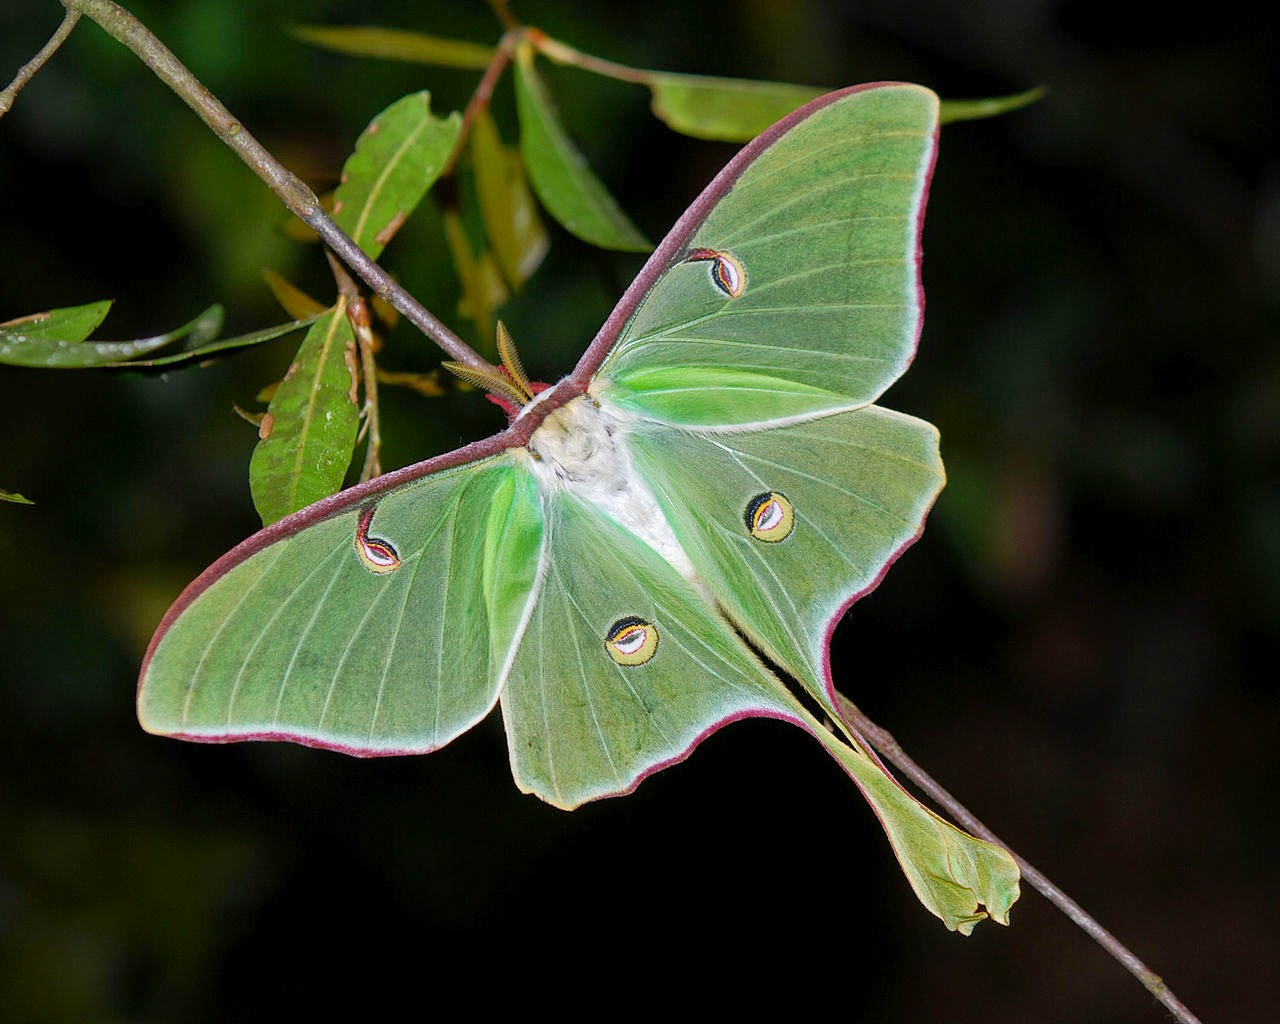 Luna moth scientific illustration - photo#2